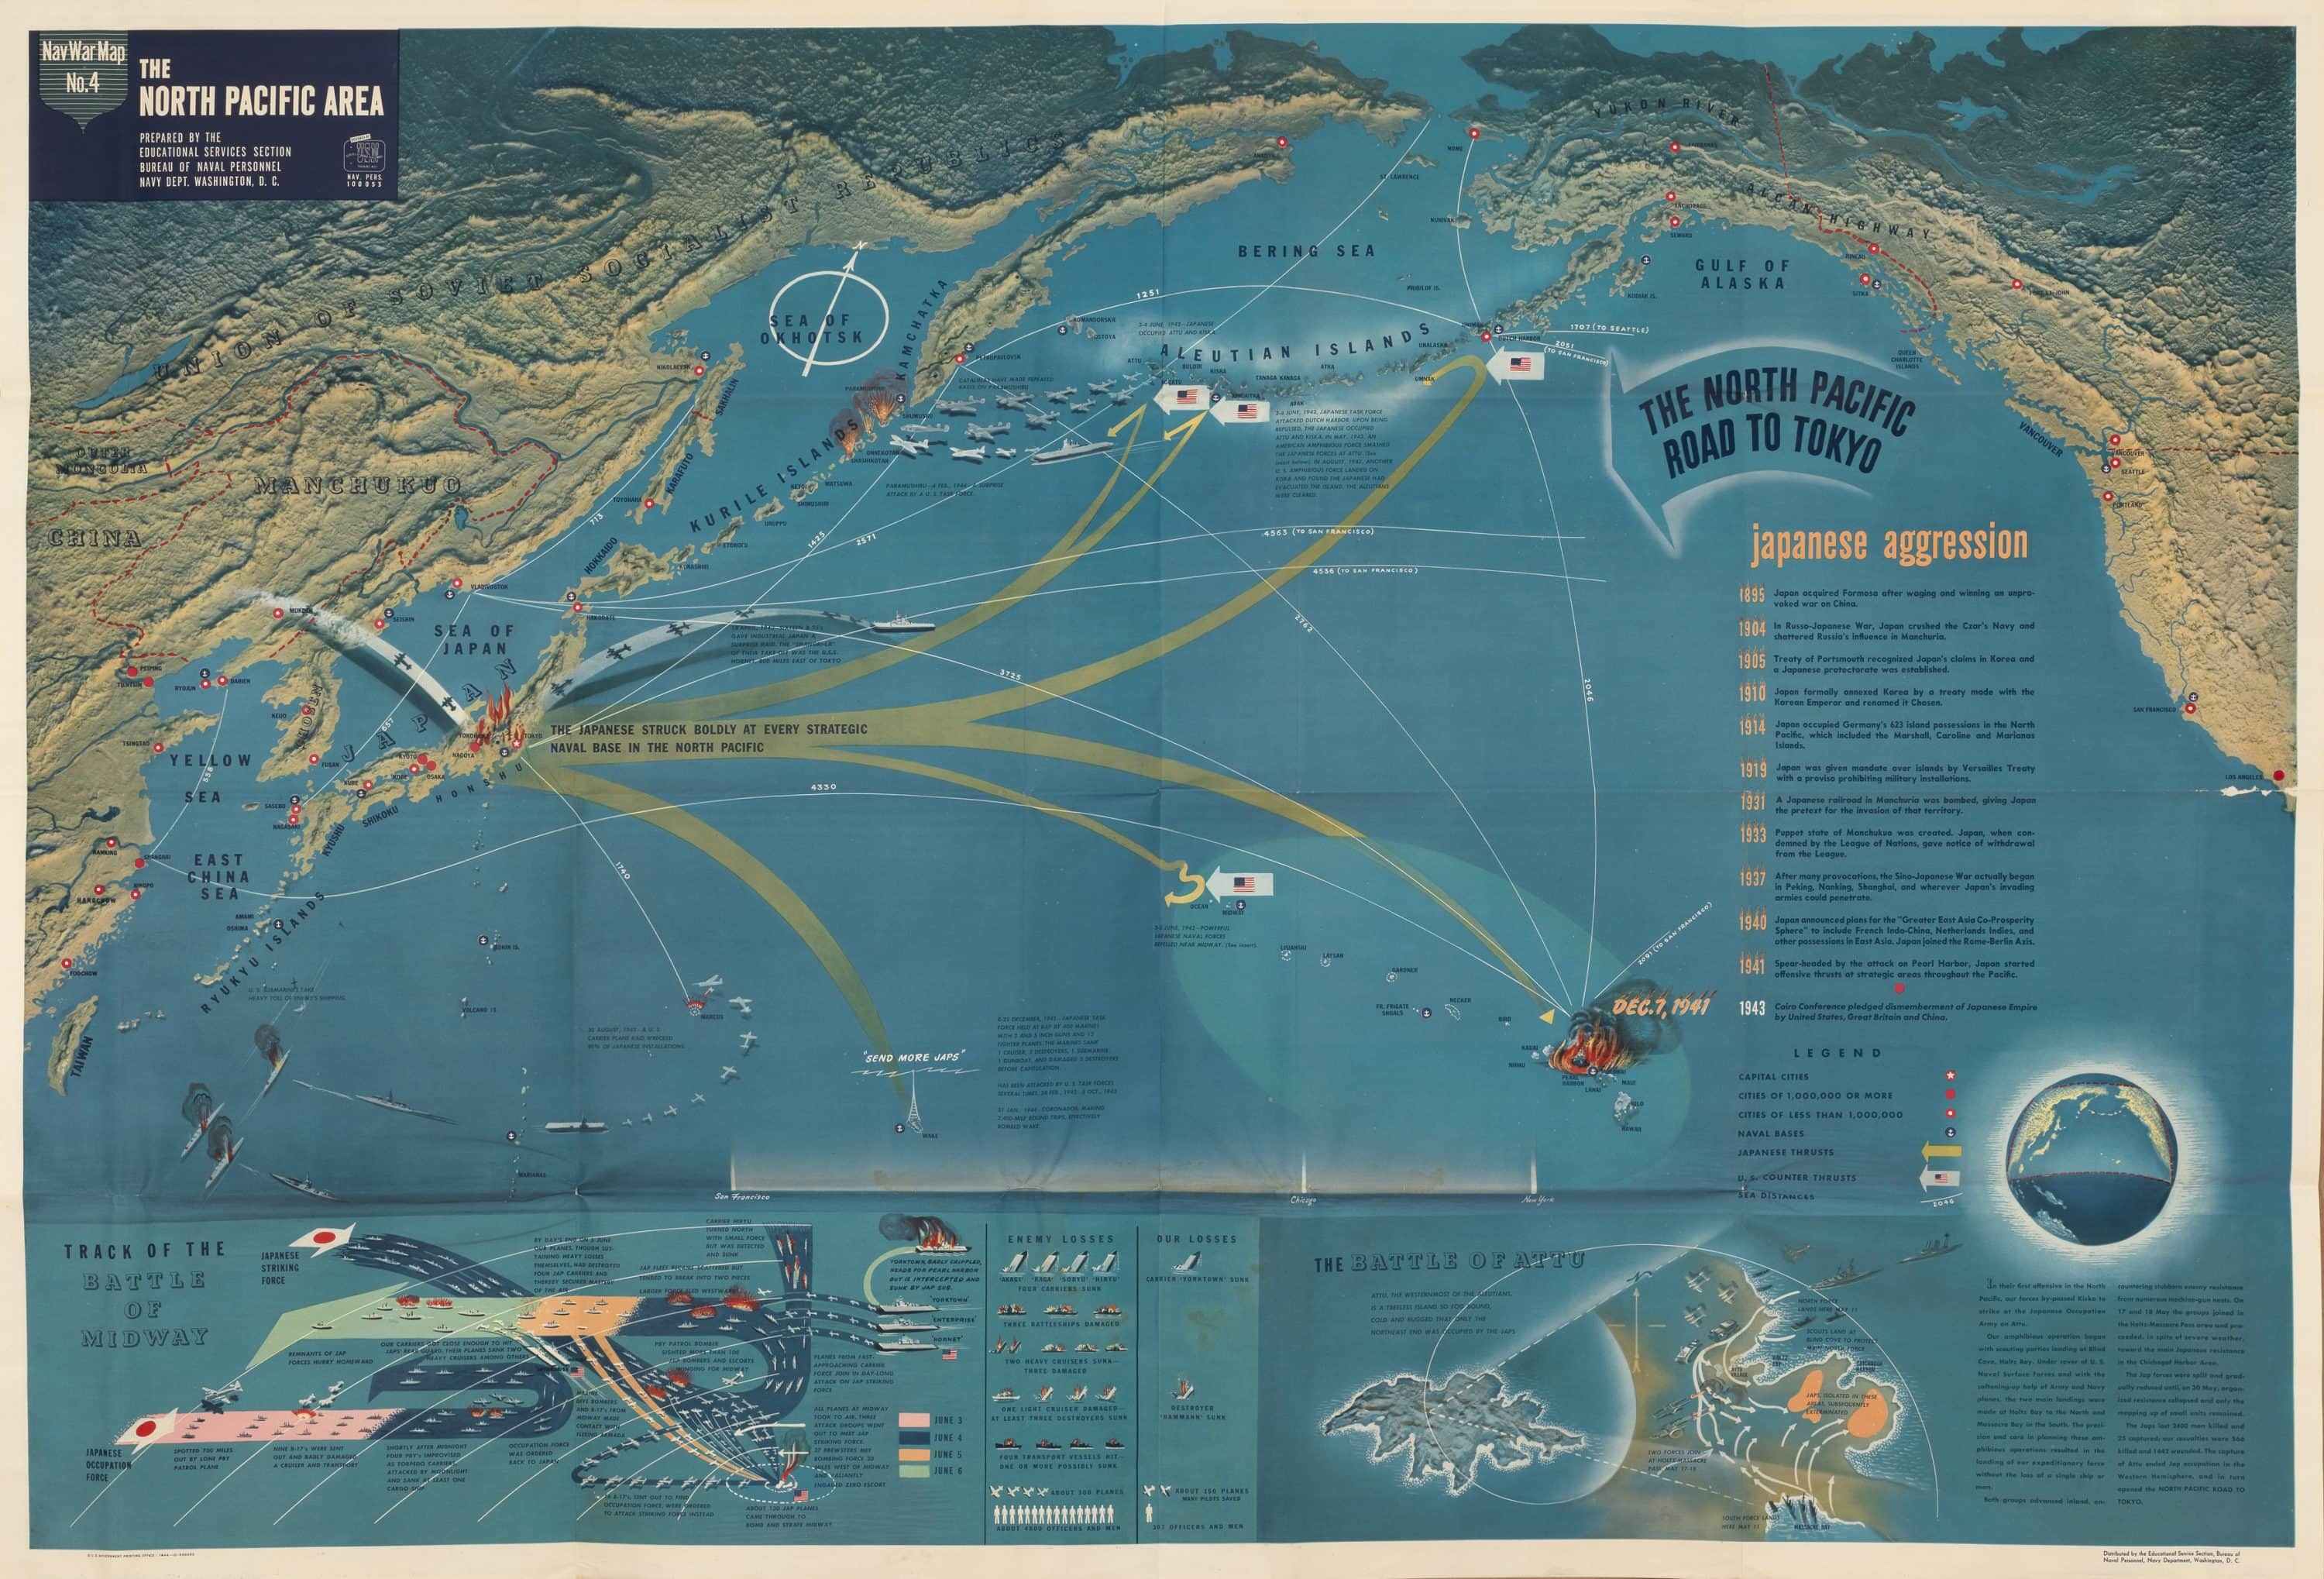 Striking Us Navy Map Of The North Pacific In Wwii Rare Antique - Pacific-ocean-on-us-map